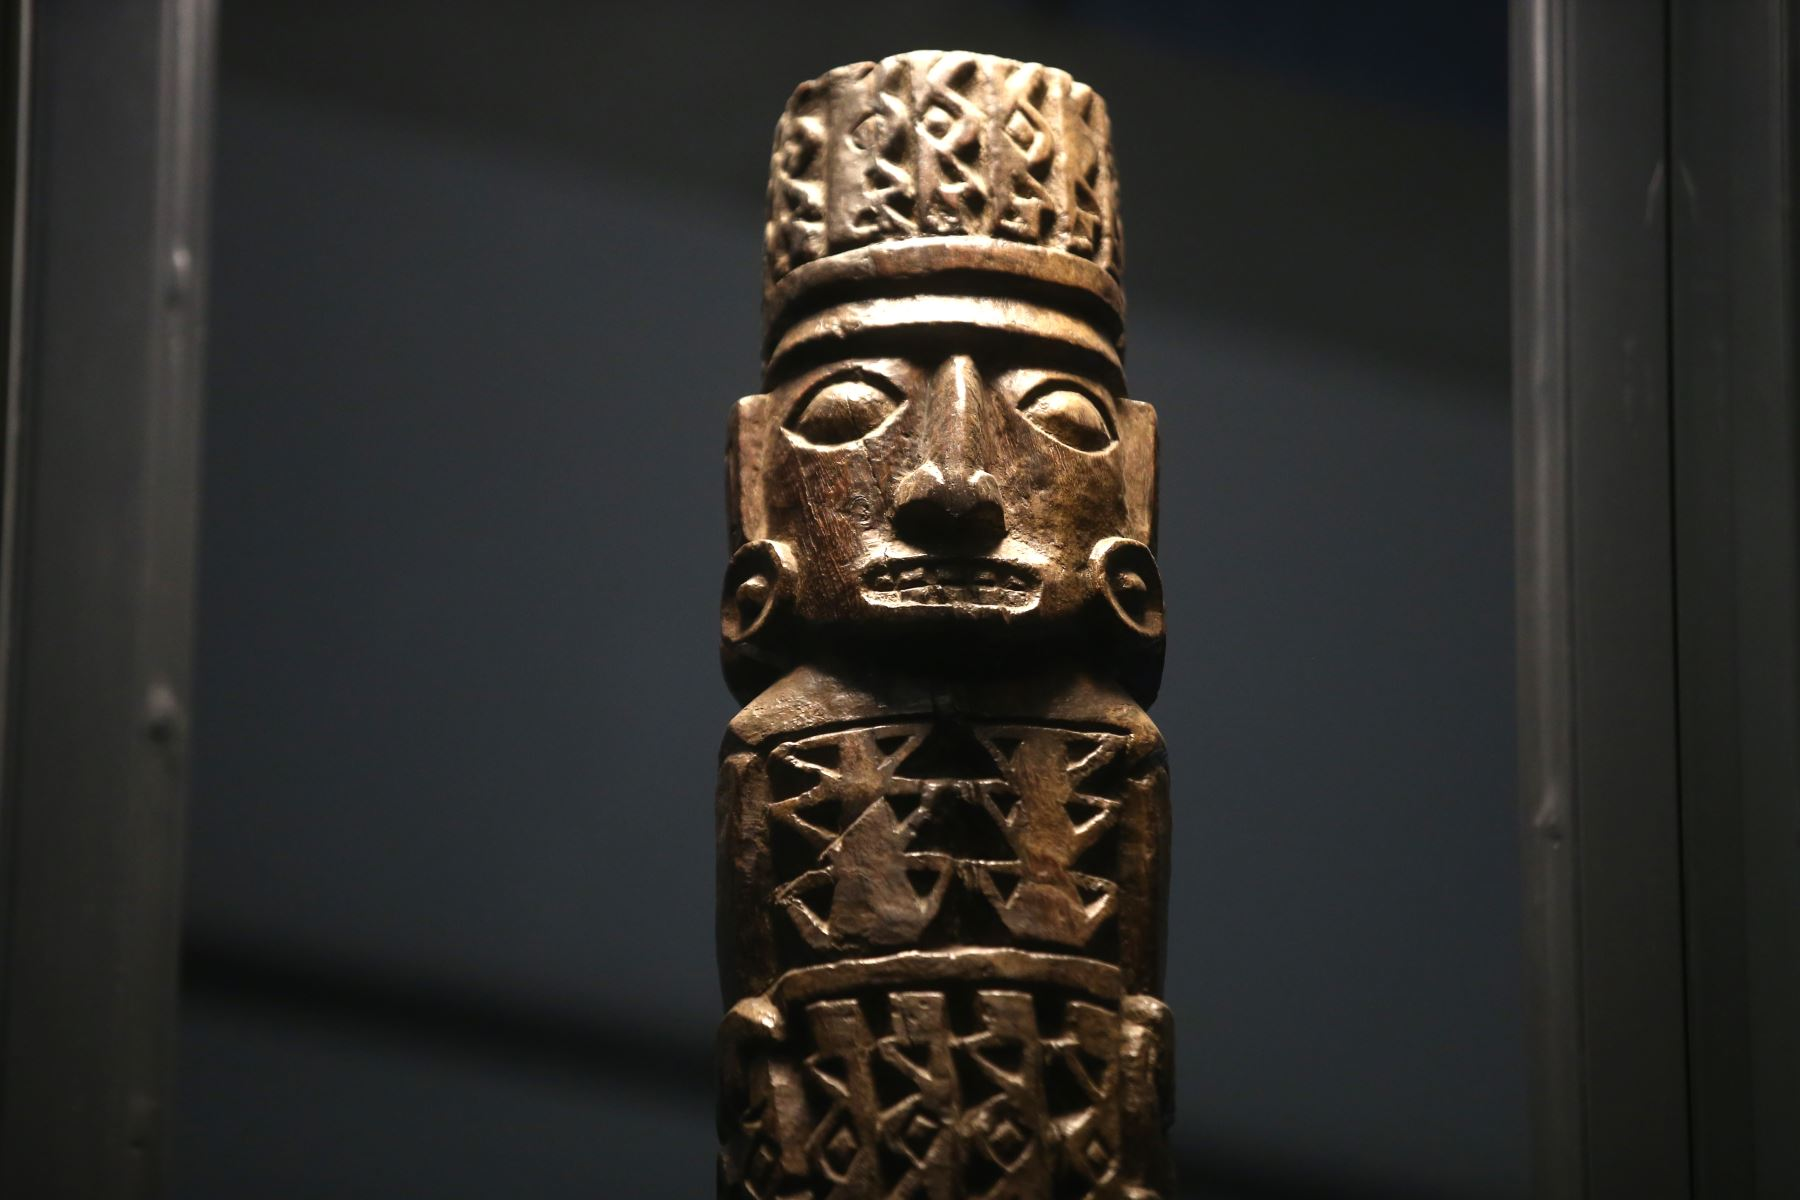 Pachacámac idol in Peru reveals its mysterious past 39